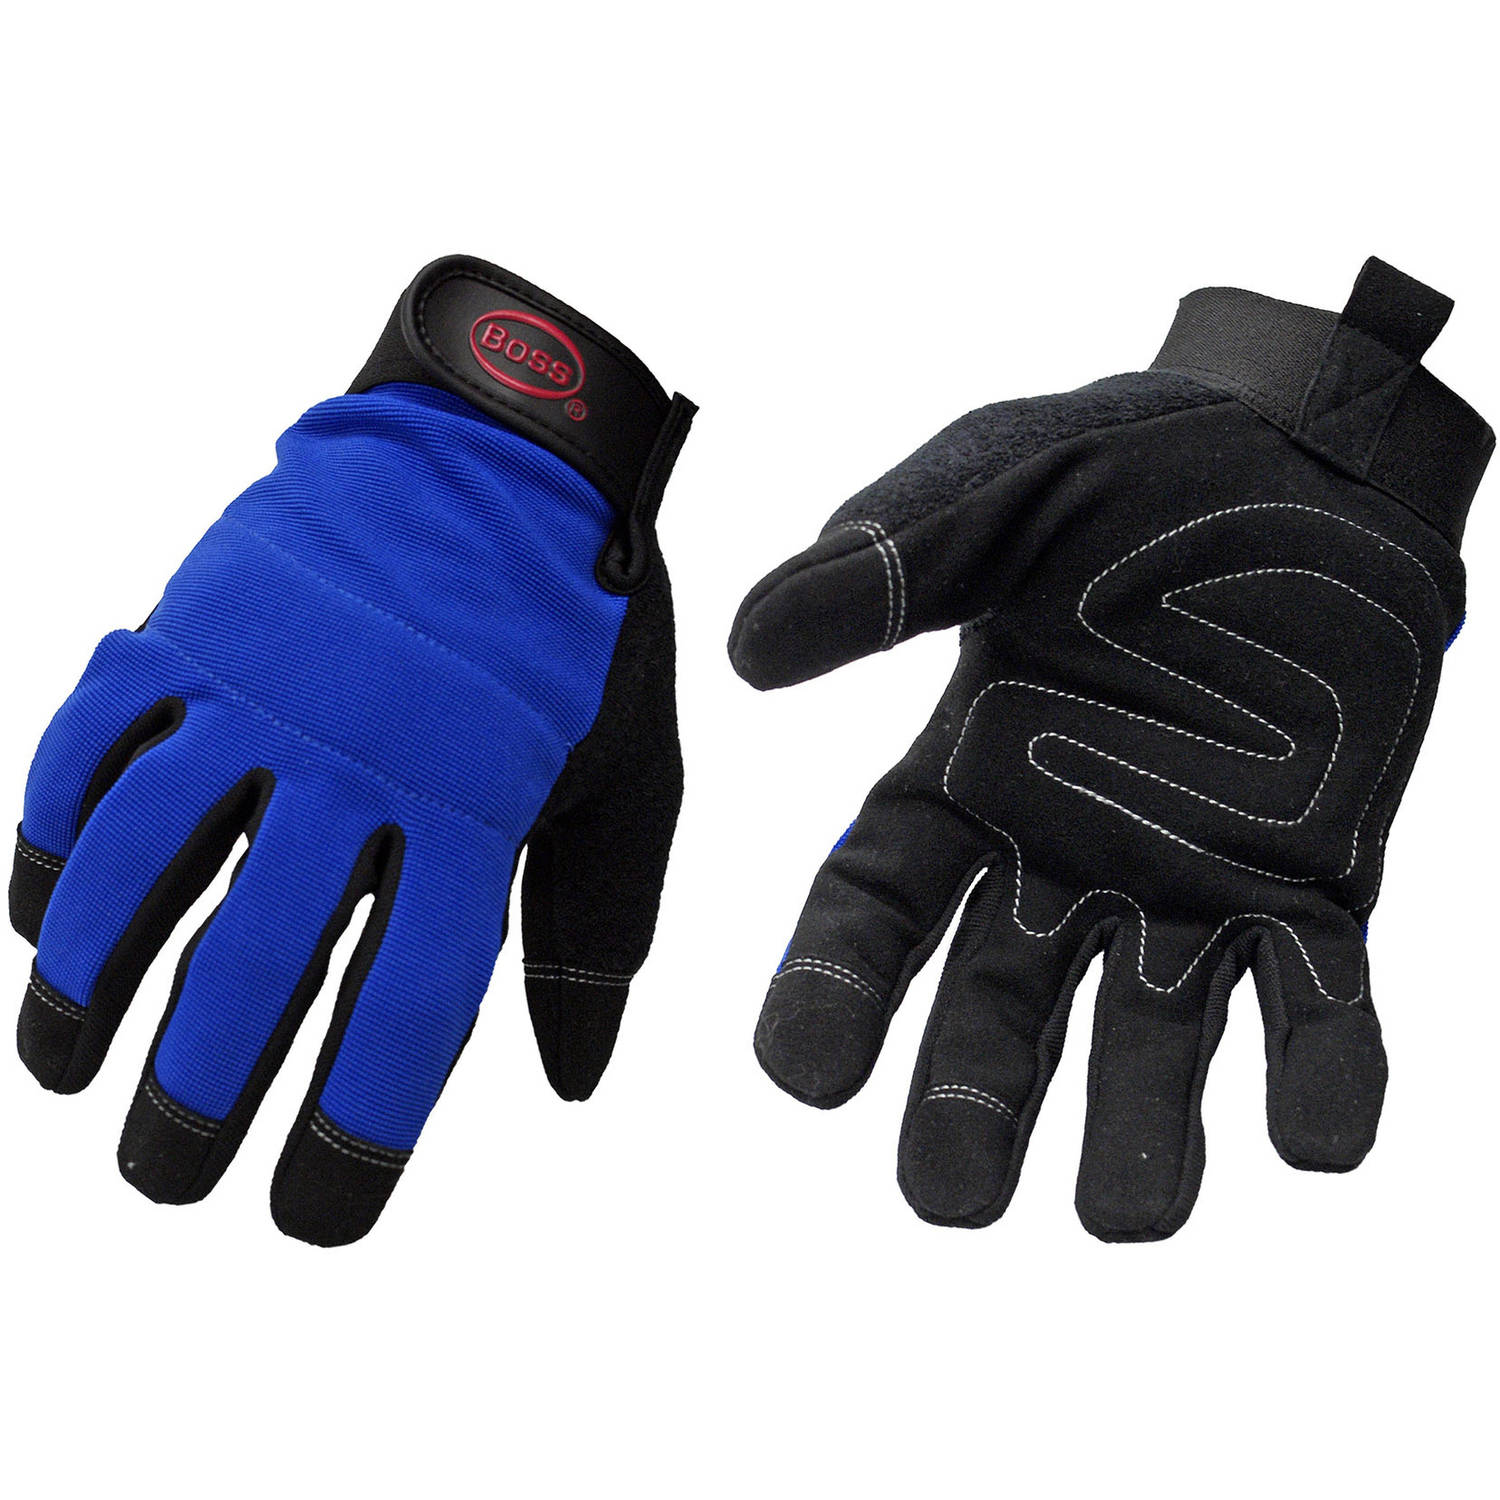 Boss Gloves 5205X Extra Large Synthetic Leather Gloves